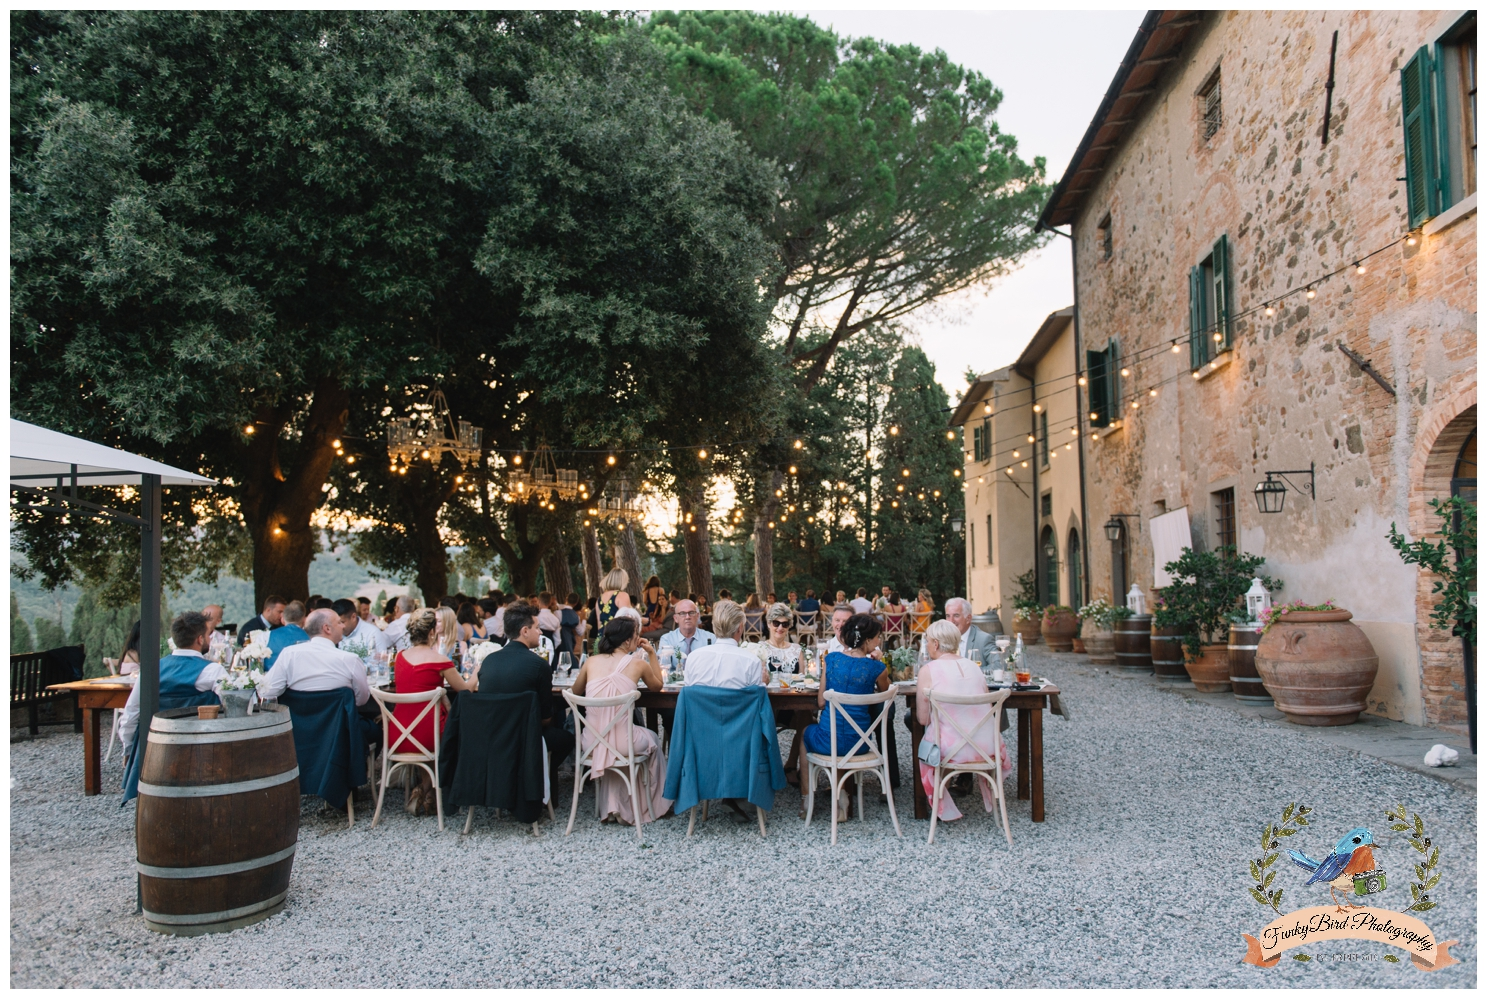 Wedding_Photographer_Tuscany_Italy_0057.jpg